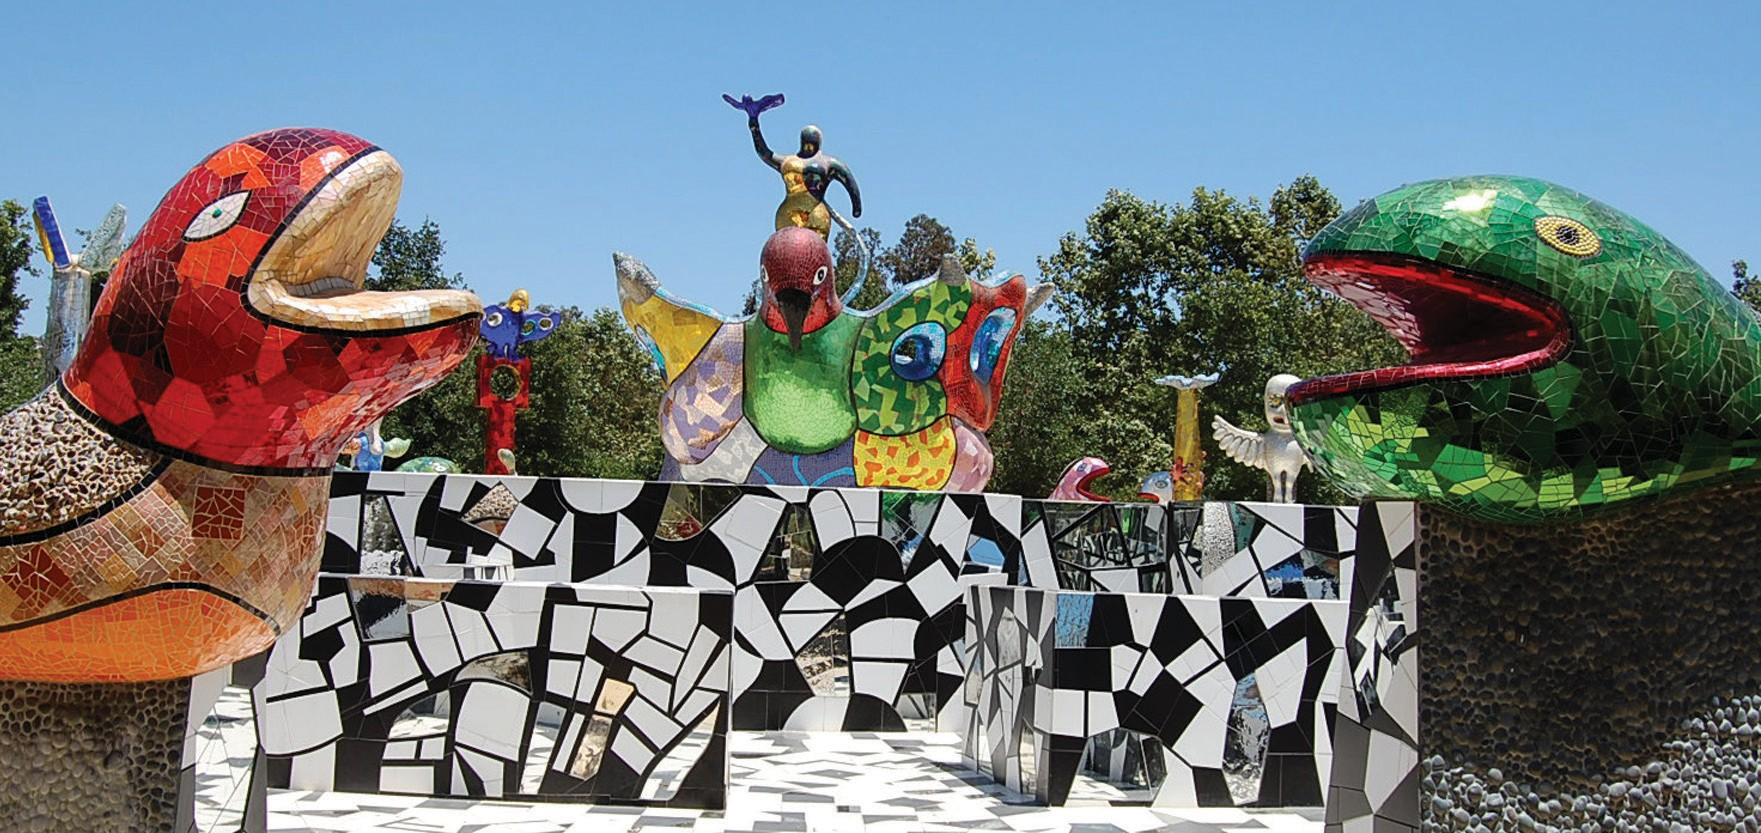 The city of Escondido is renovating Queen Califia's Magical Circle, but it's open to the public for a few hours this Saturday.